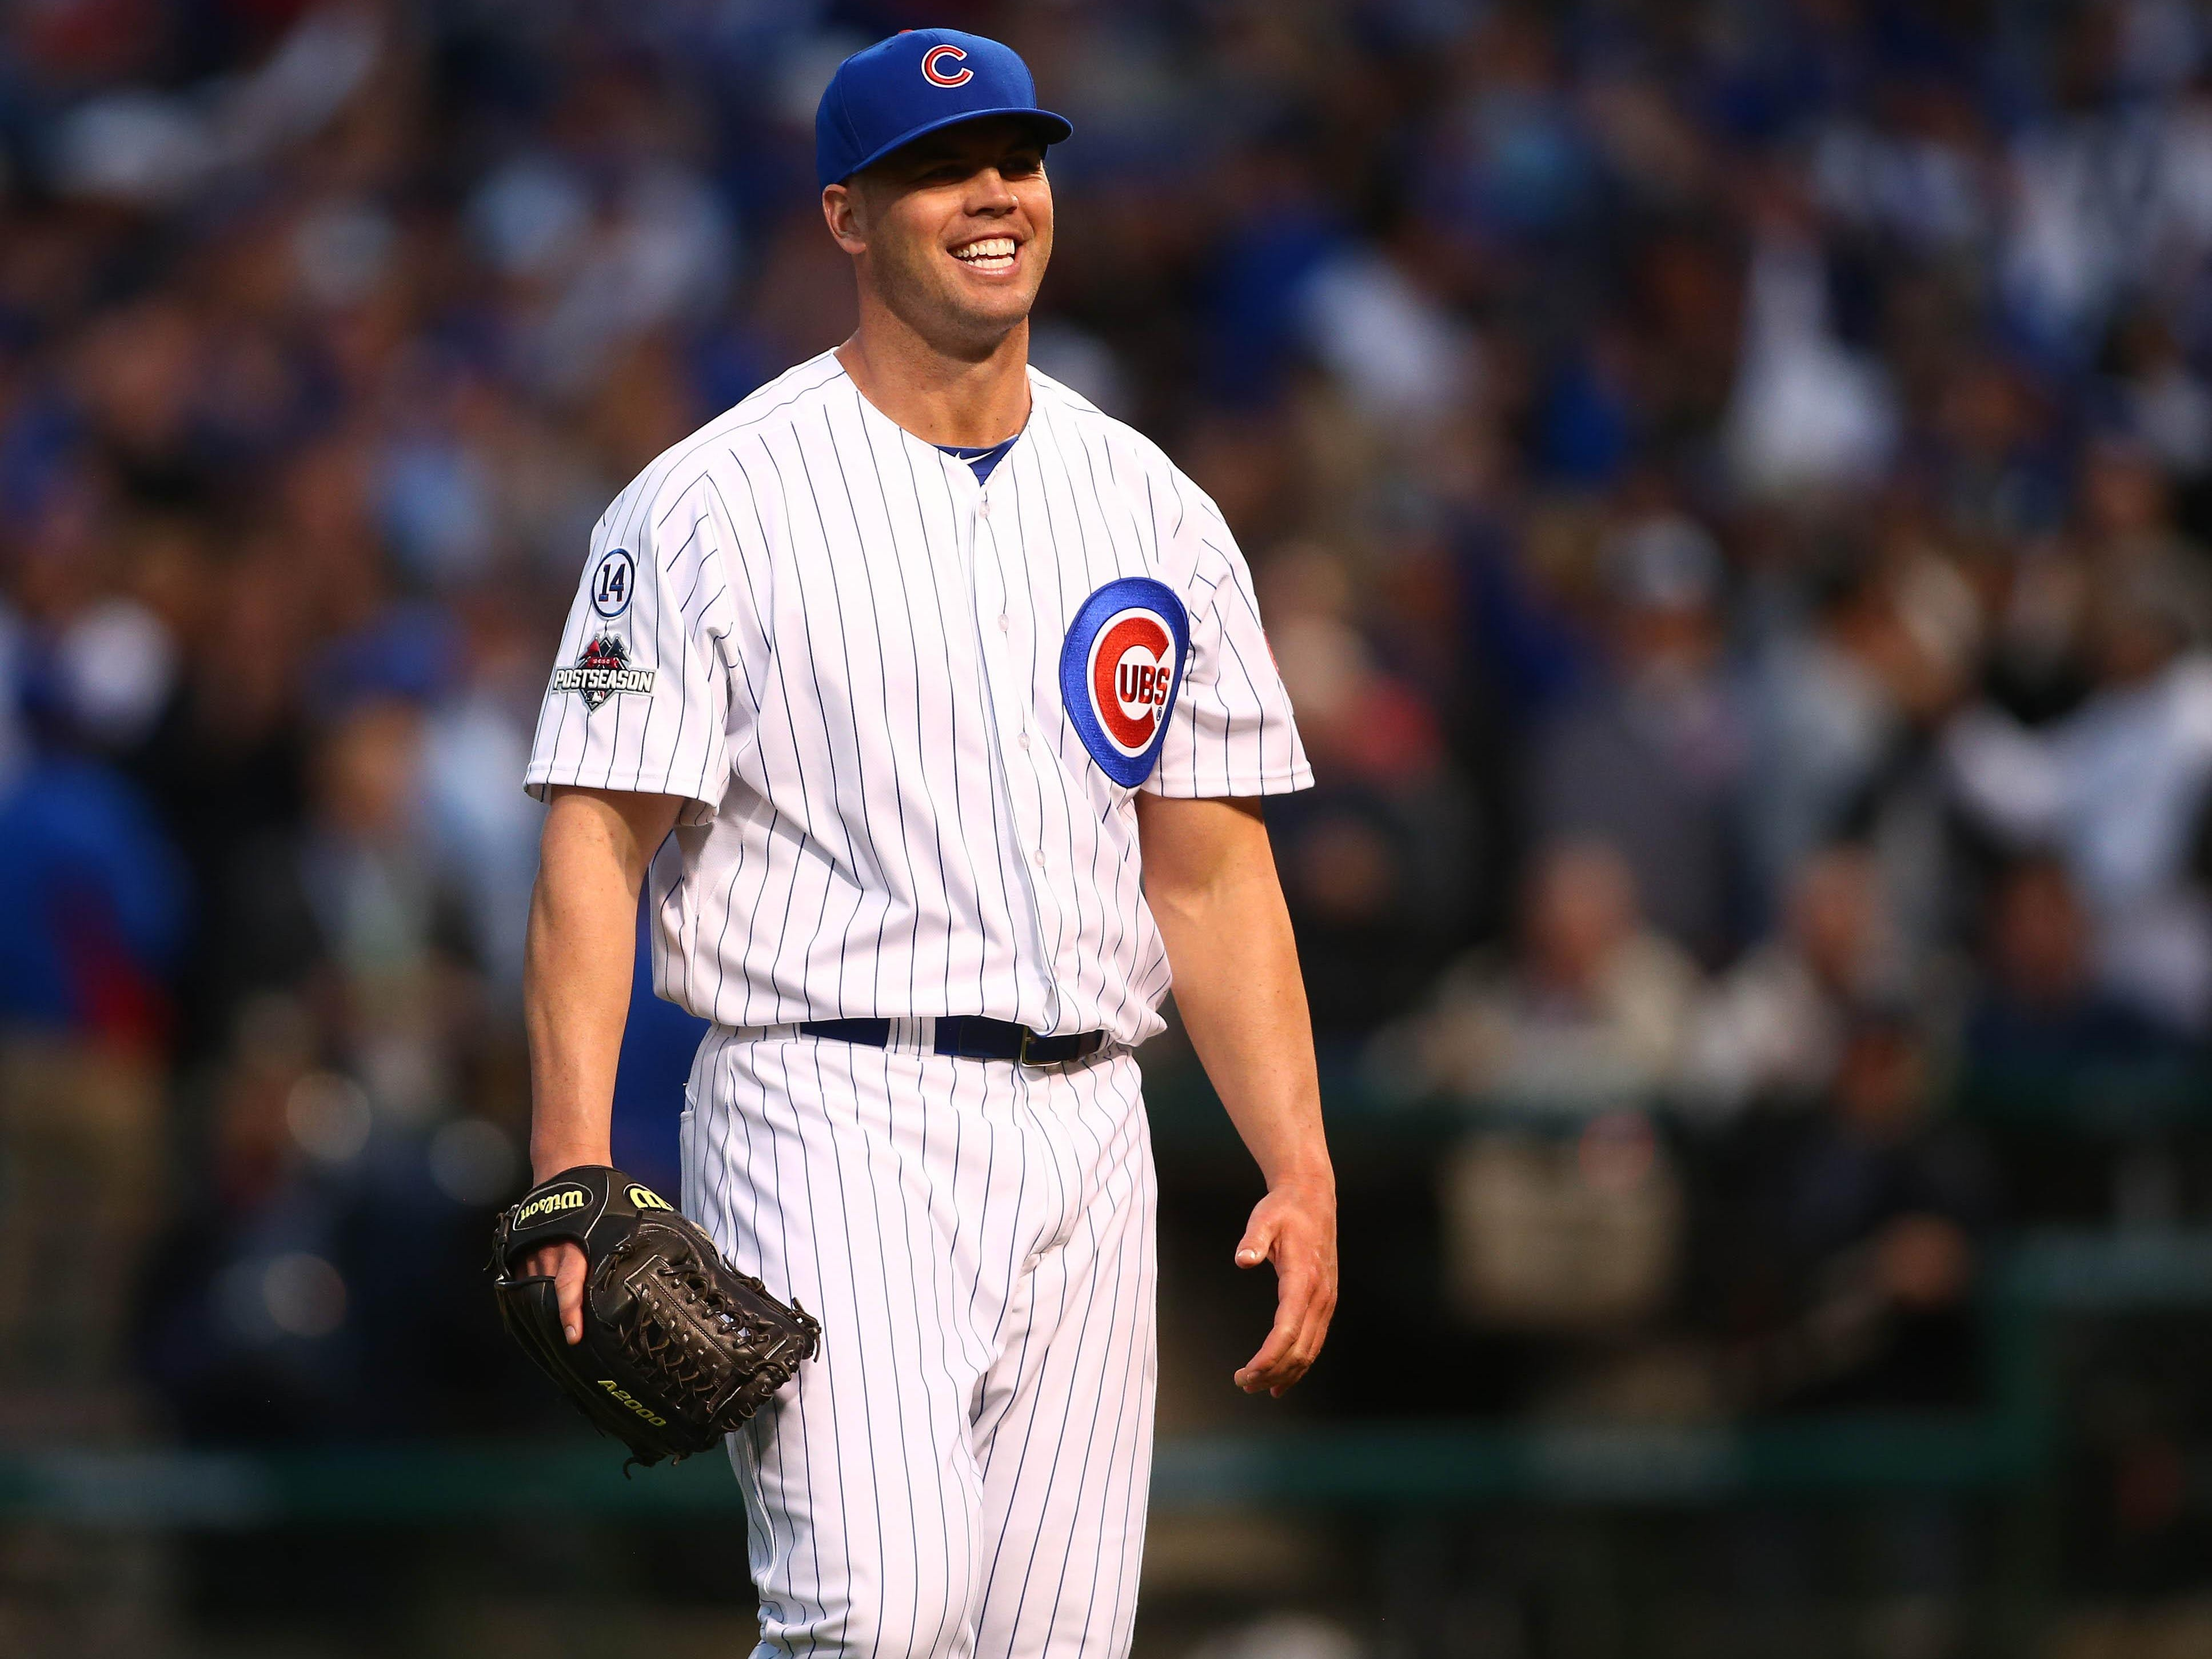 Chicago Cubs relief pitcher Clayton Richard (33) reacts after he pitches the seventh inning against St. Louis Cardinals in game four of the NLDS at Wrigley Field.